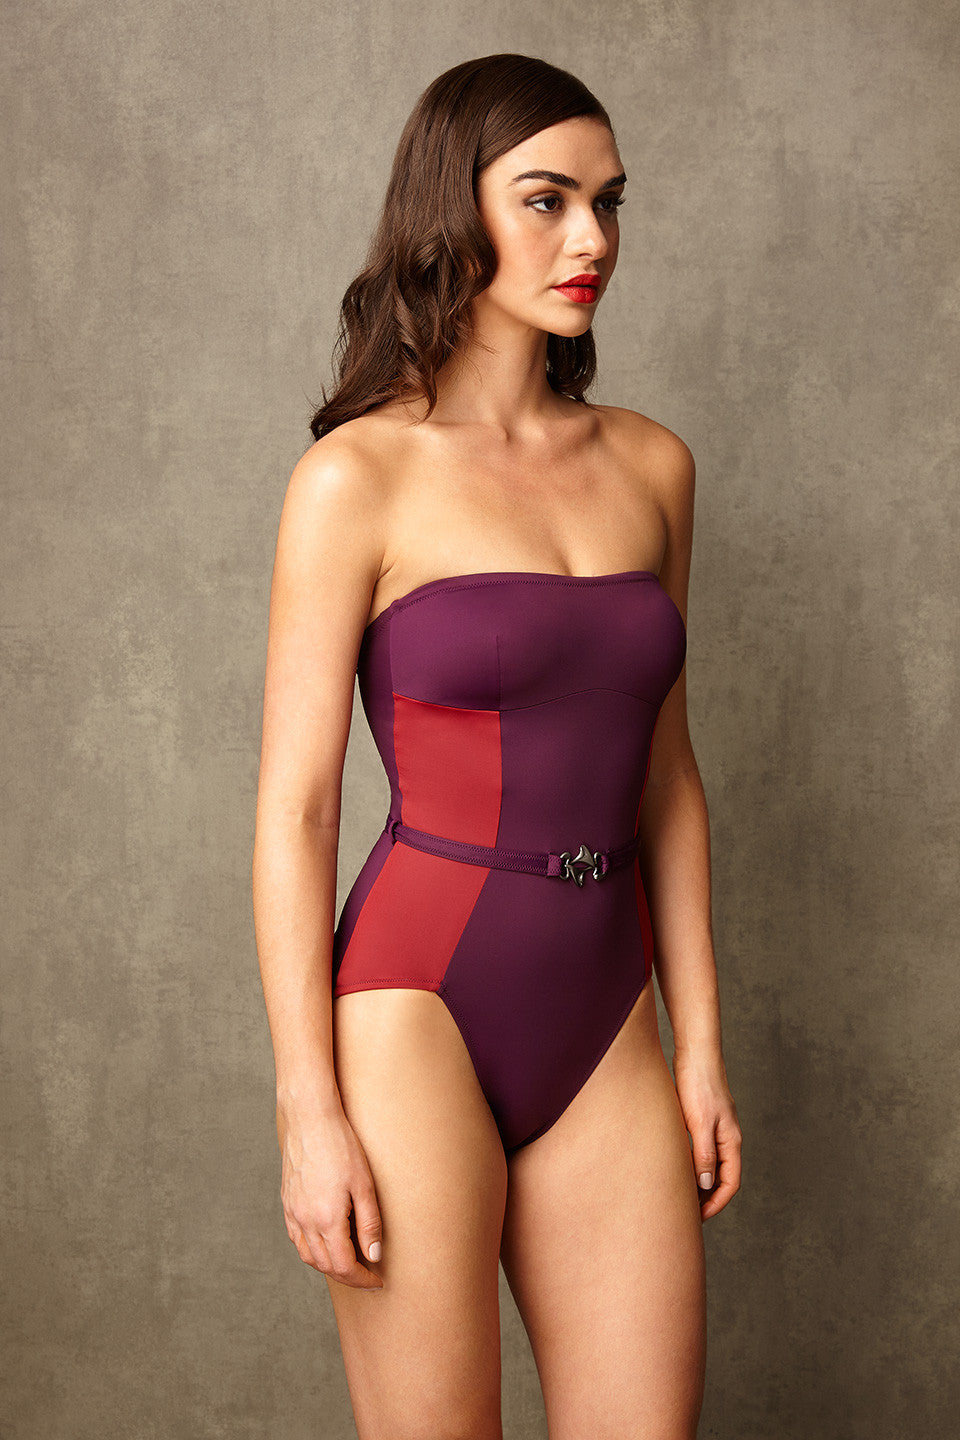 1b3bd948c4 Luxury Designer Swimwear FoxTrot purple   red bandeau strapless swimsuit